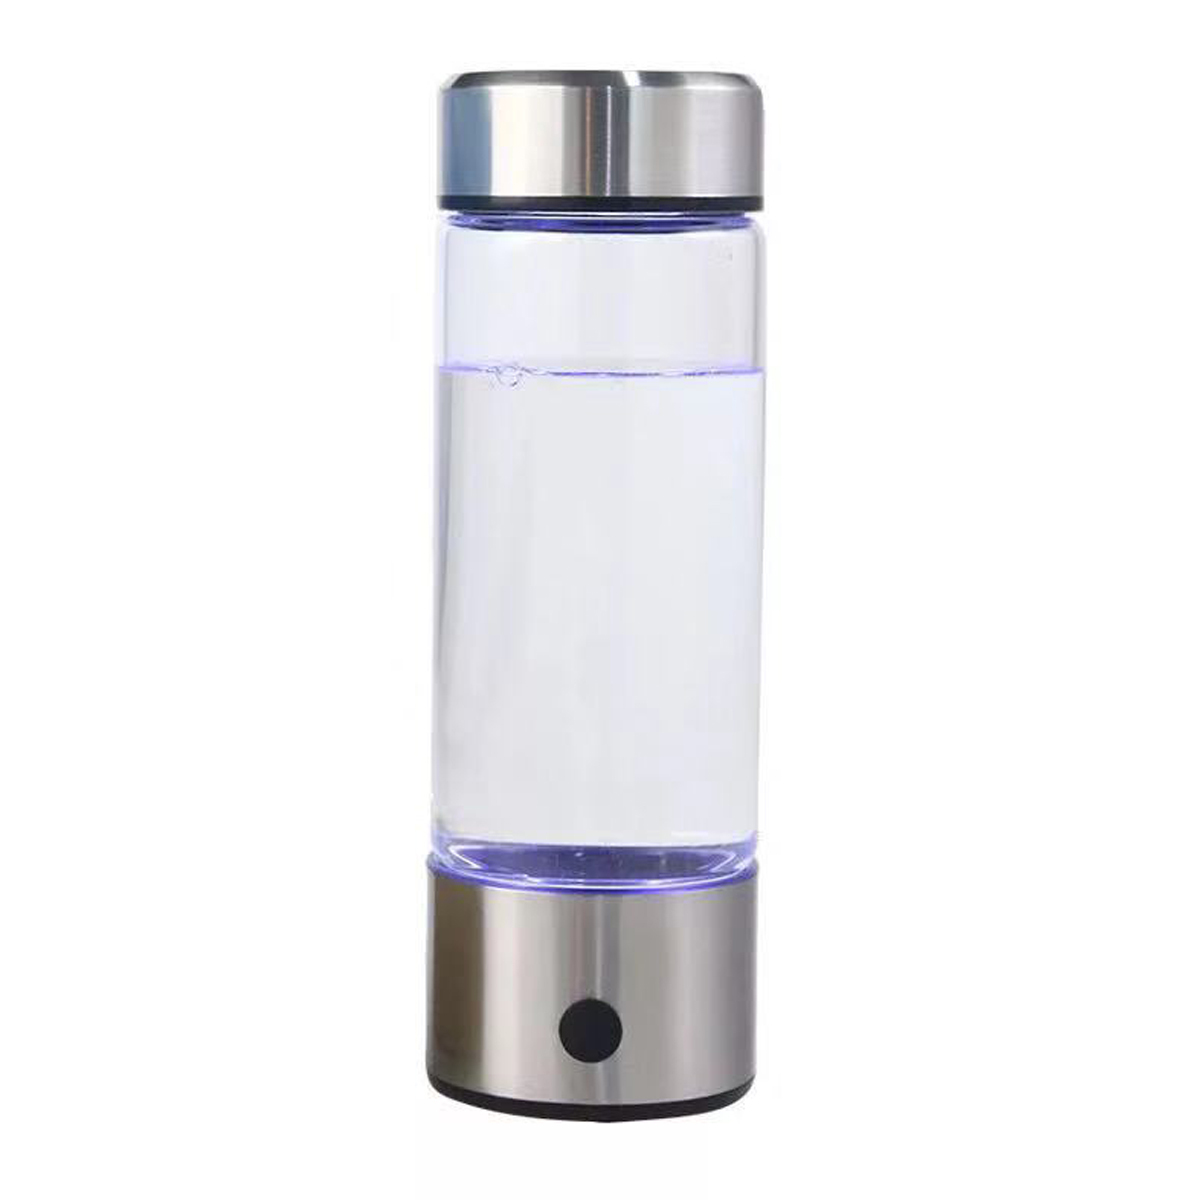 420ML Portable Hydrogens Water Generator Alkaline Maker Bottle USB Rechargeable for Pure Hydrogen-rich Water Filter Electrolysis image